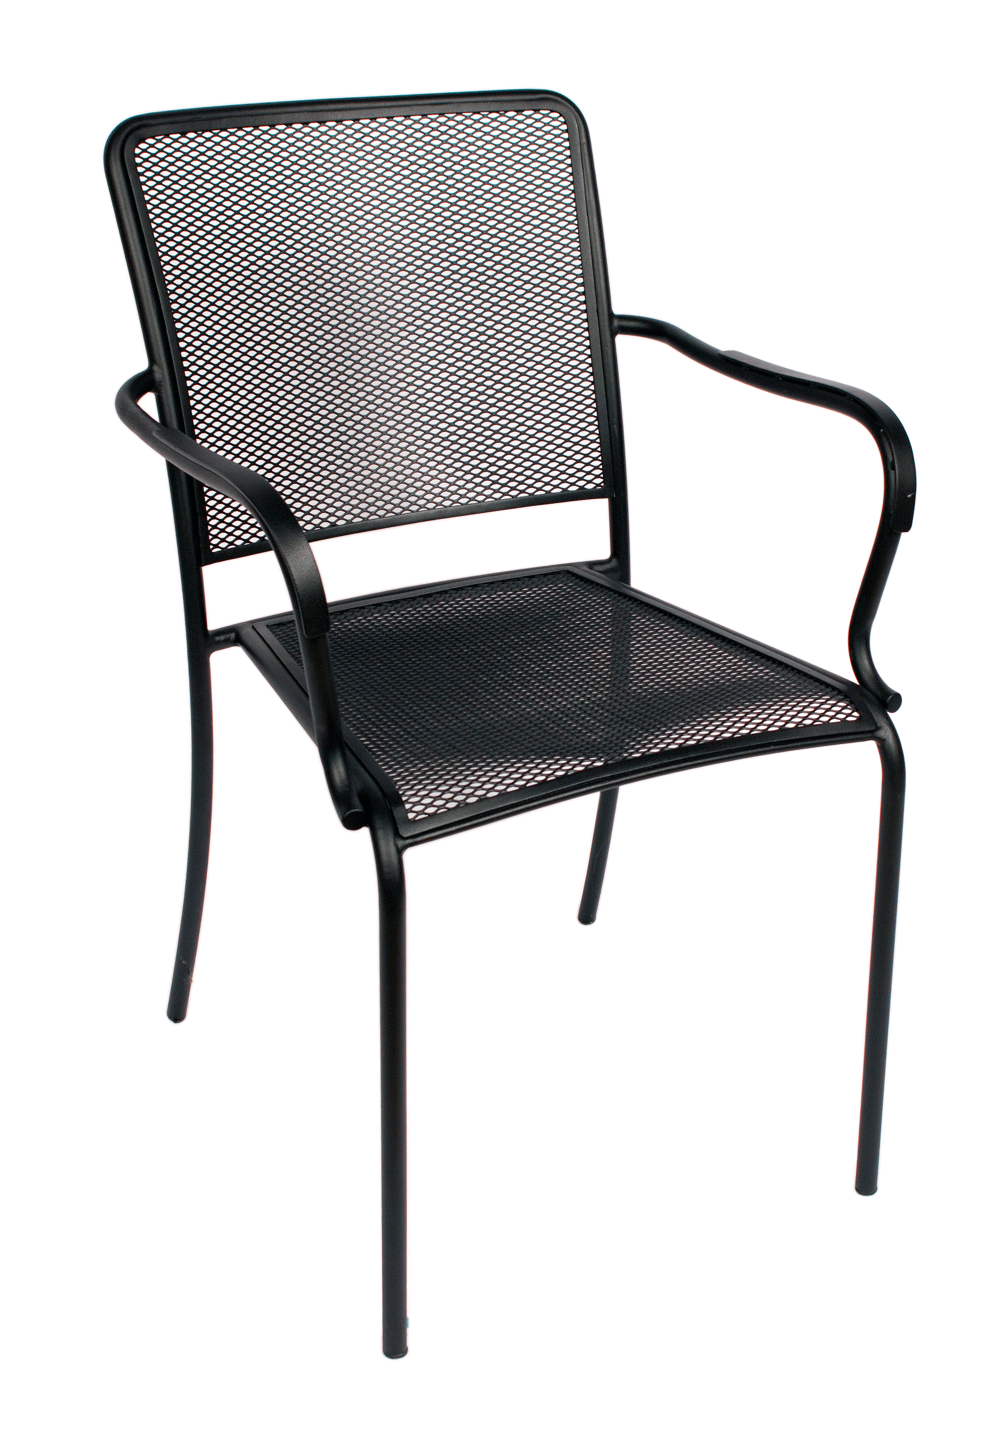 Indoor/Outdoor Galvanized Steel Micro Mesh Seat and Back Stacking ...